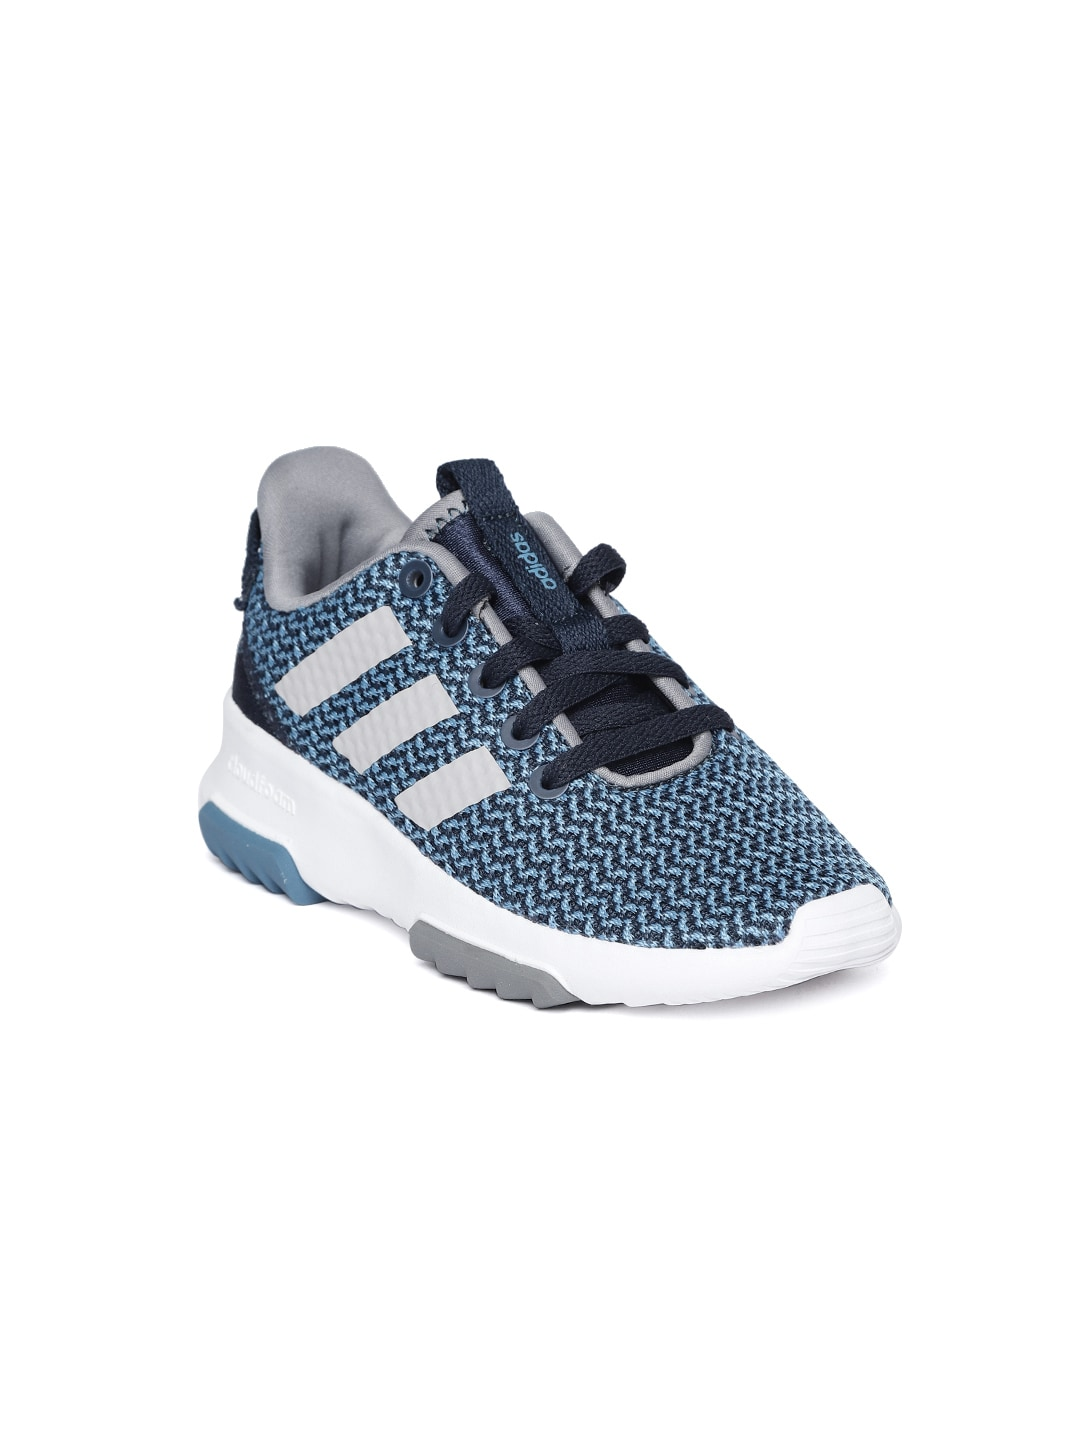 c617999918c Running Shoes Boys Sports Casual - Buy Running Shoes Boys Sports Casual  online in India